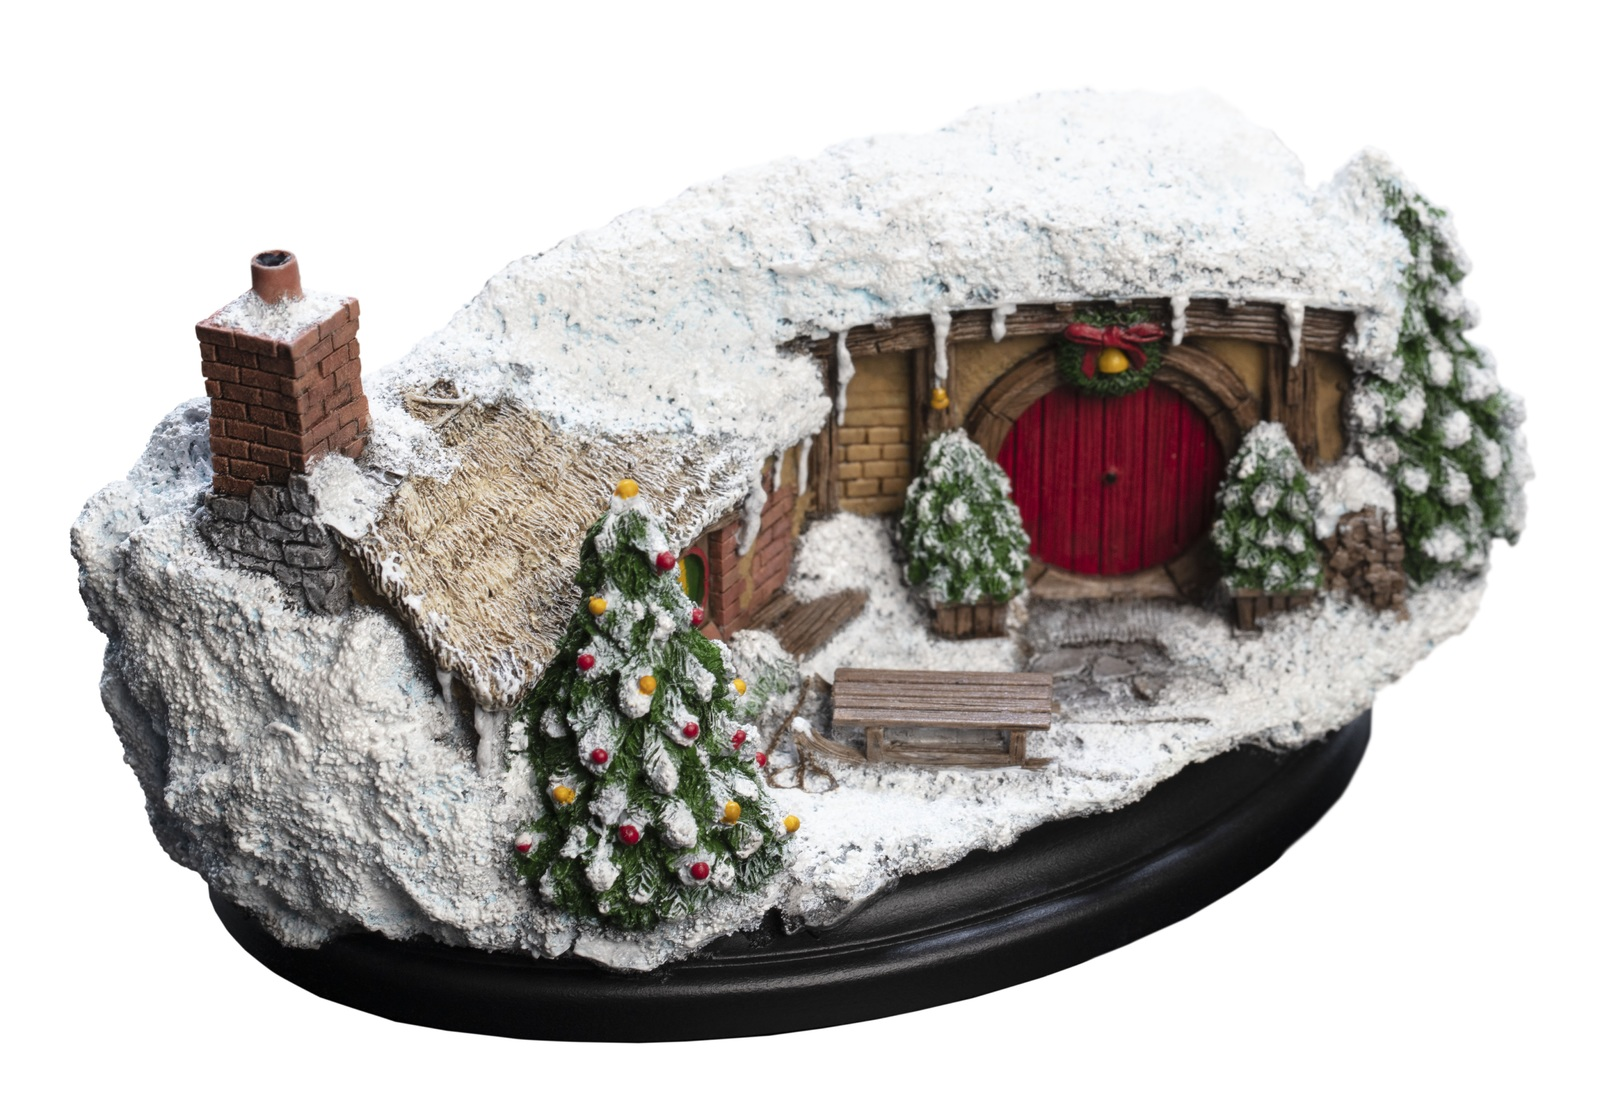 The Hobbit: 35 Bagshot Row (Christmas Edition) - Hobbit Hole Statue image